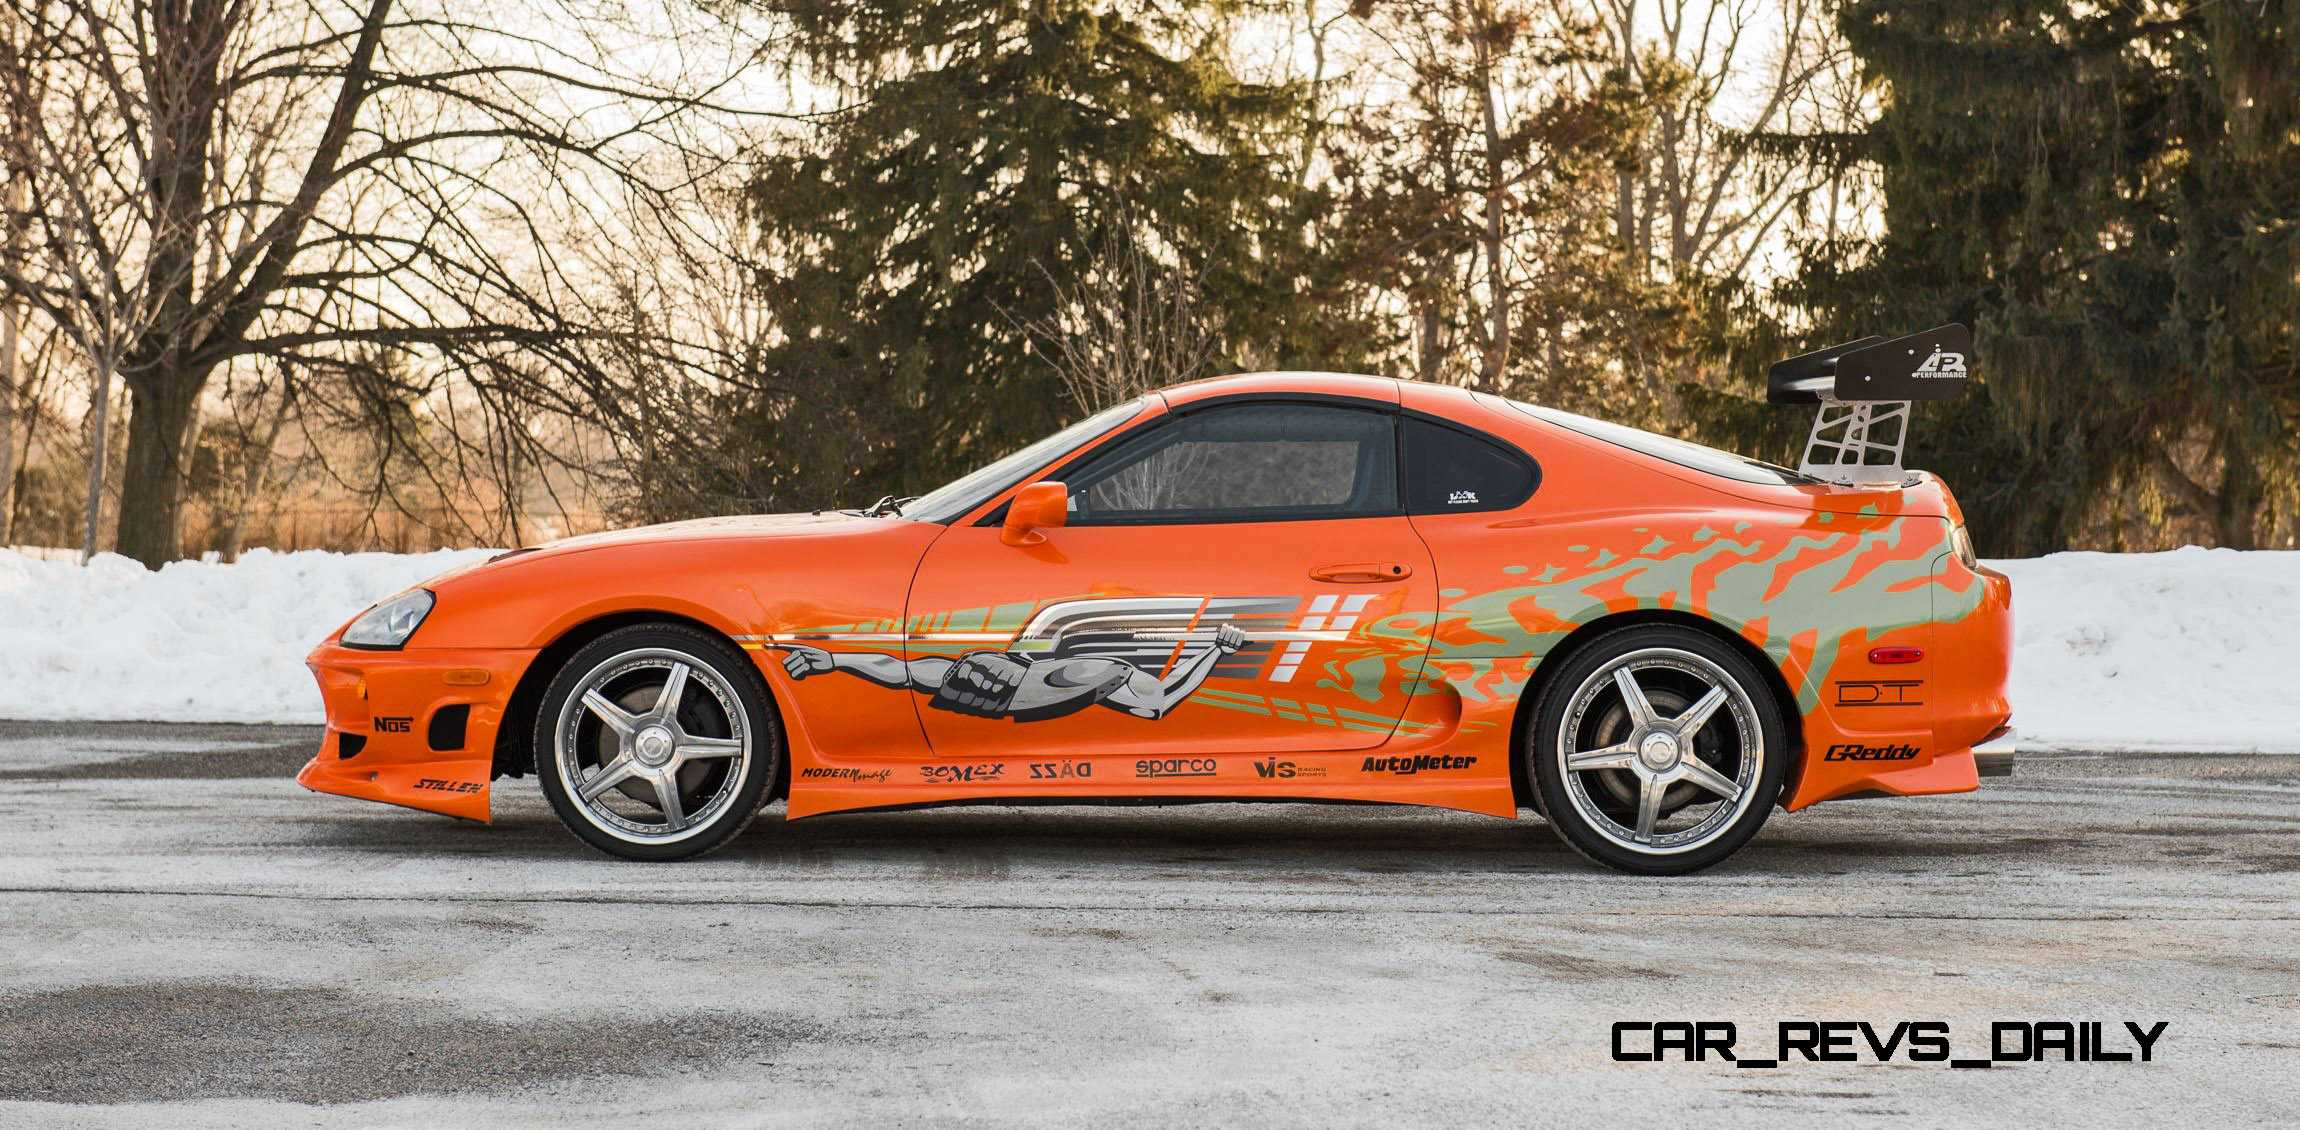 Toyota Supra From The Fast And The Furious 1993 Toyota Supra Official Fast Furious Movie Car 12